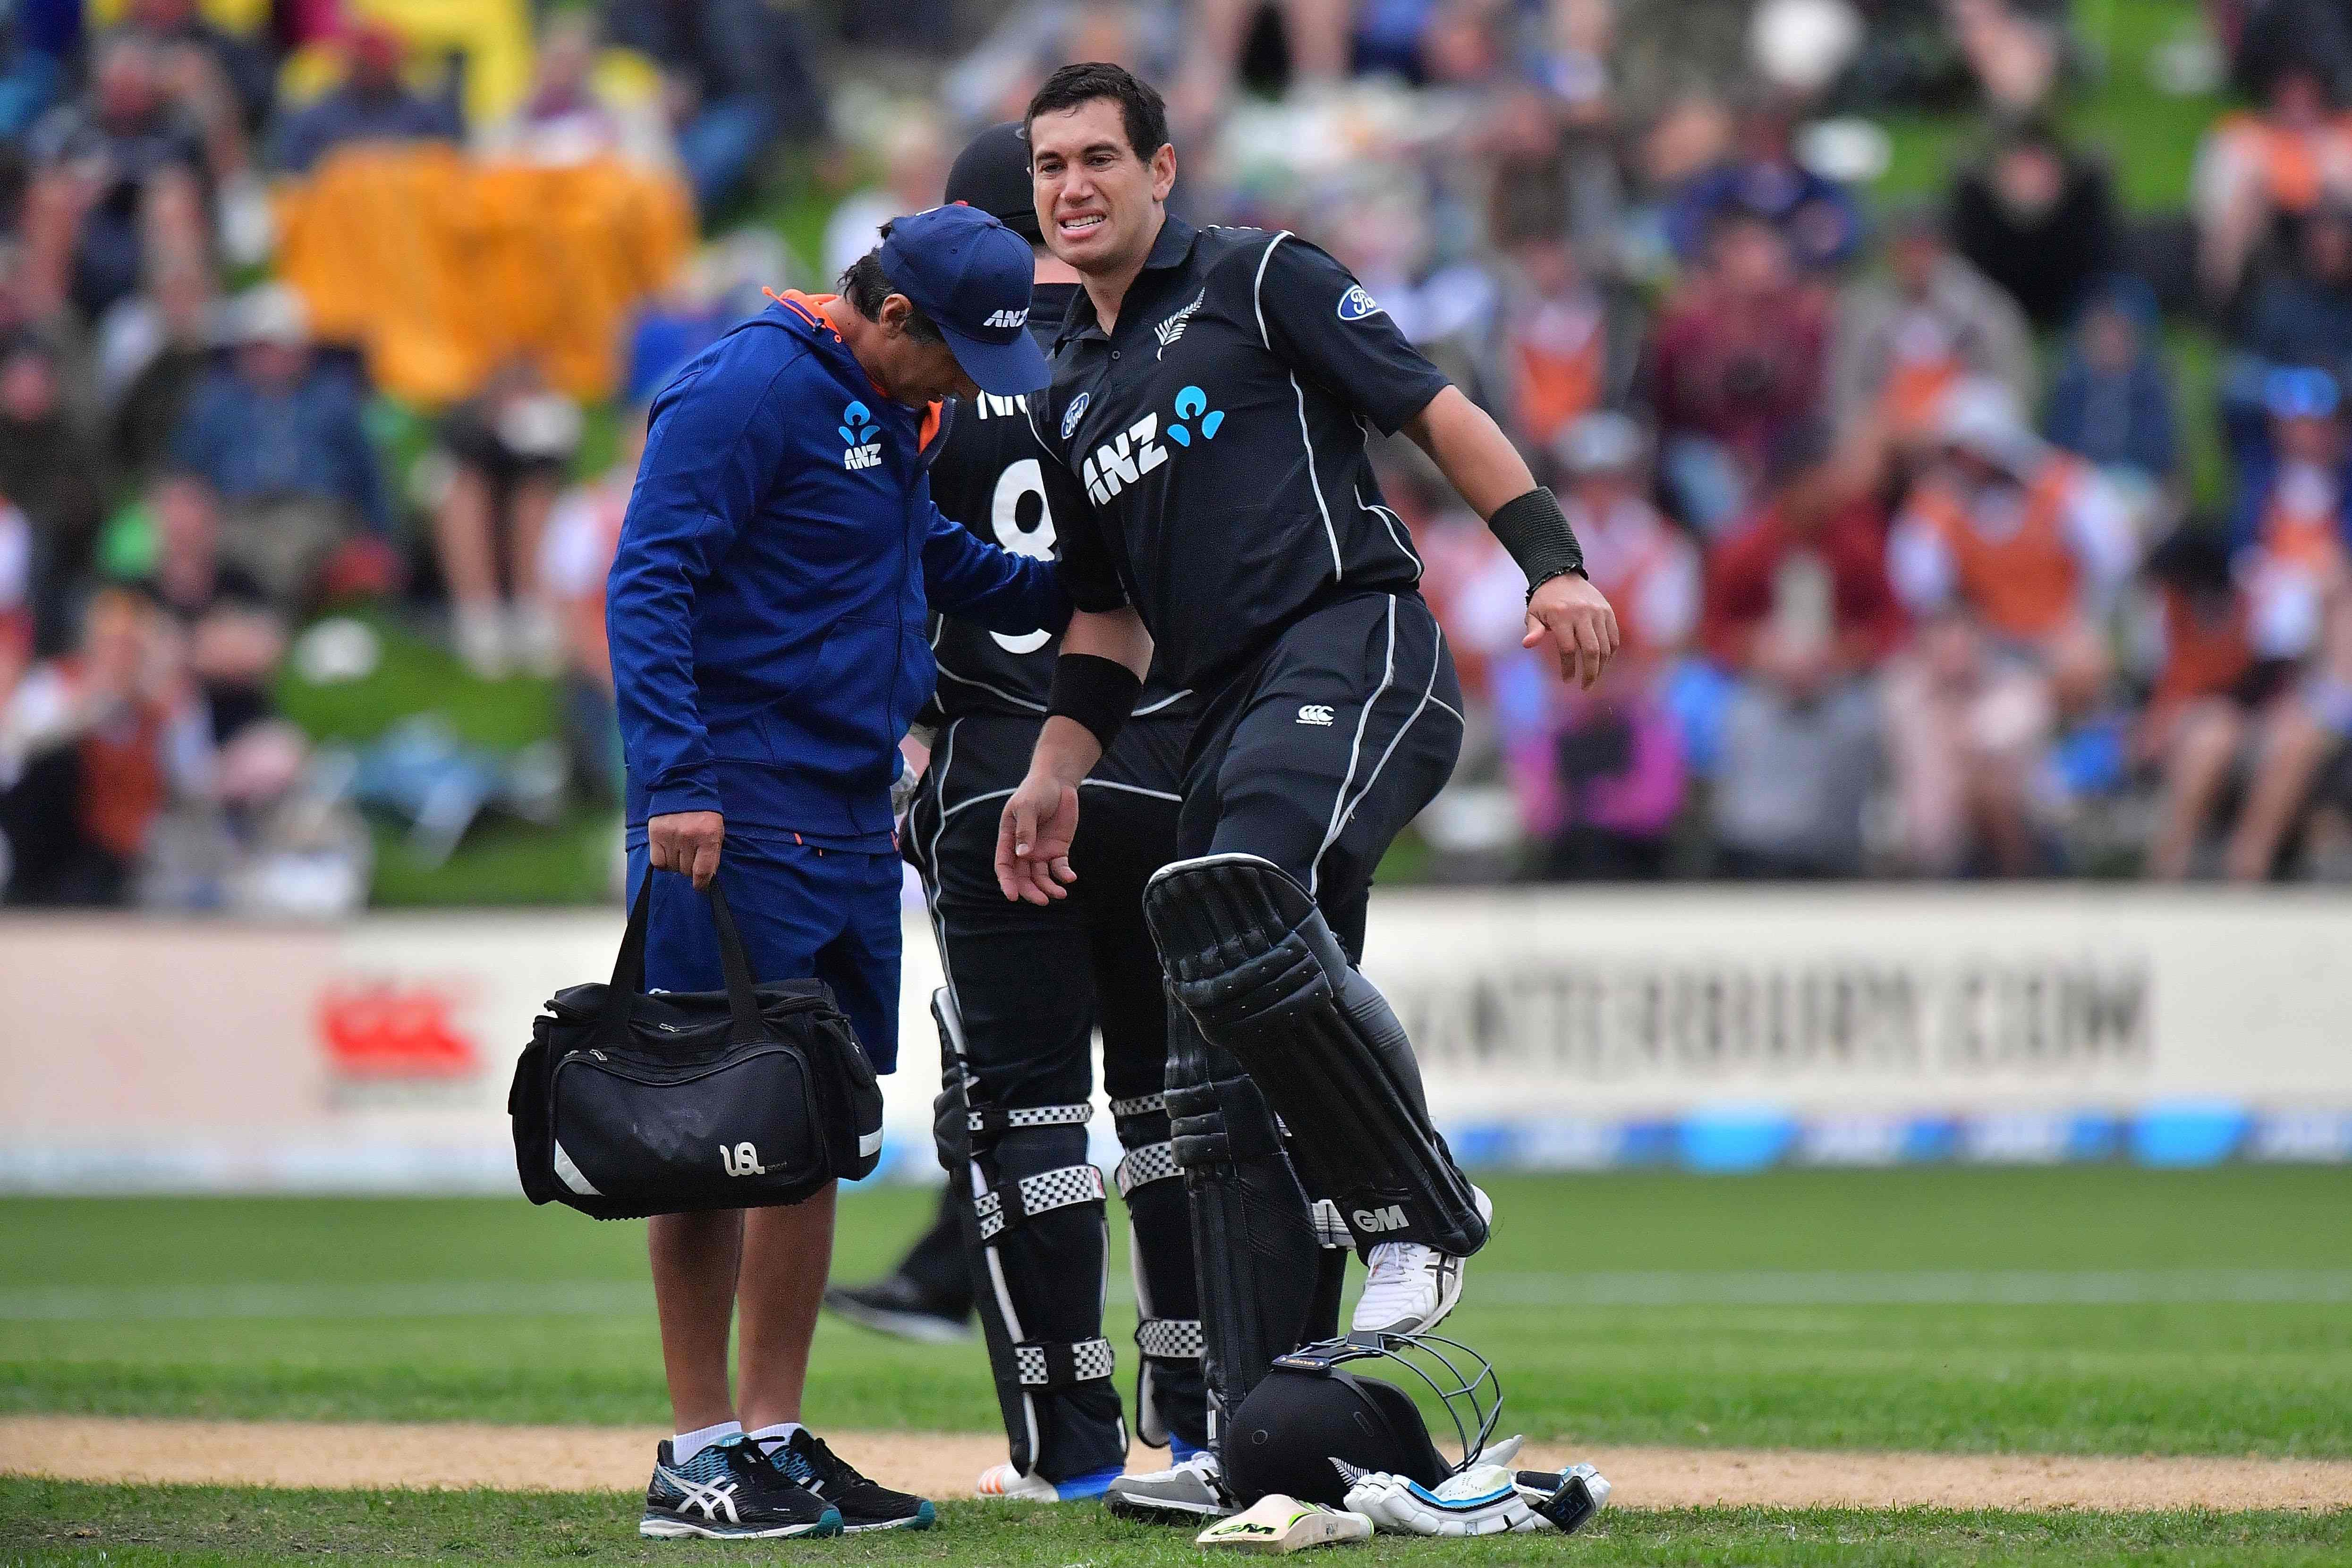 Ross Taylor was suffering from a thigh injury which made the 181 not-out innings even more amazing